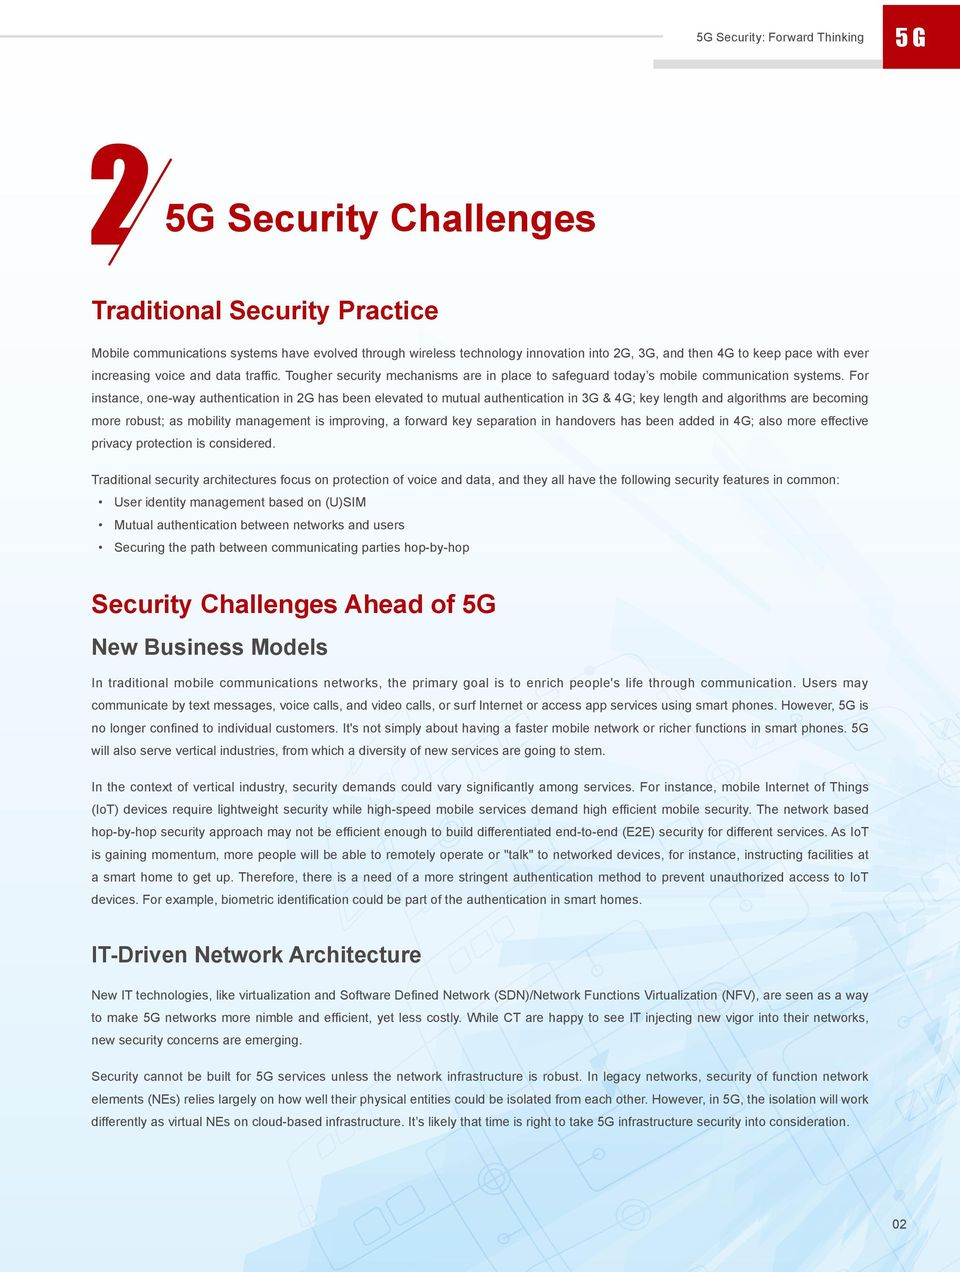 5G Security: Forward Thinking Huawei White Paper - PDF